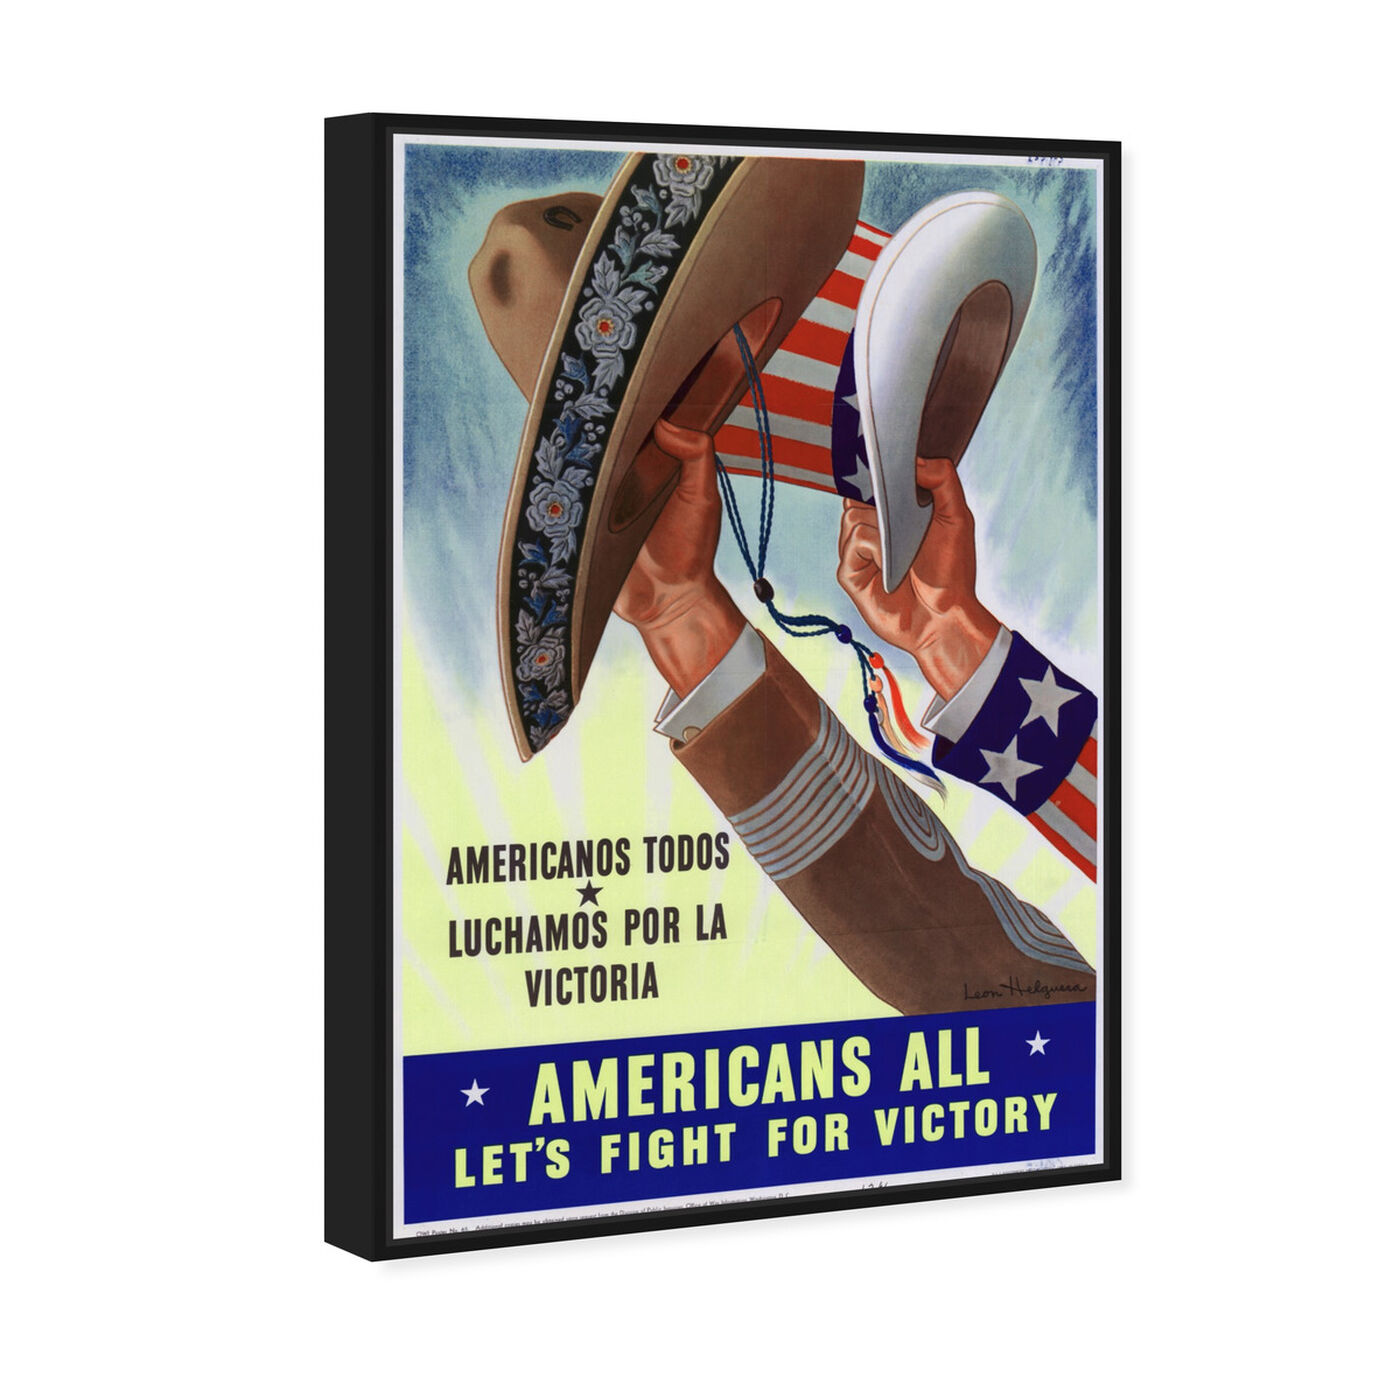 Angled view of Americans All featuring advertising and posters art.